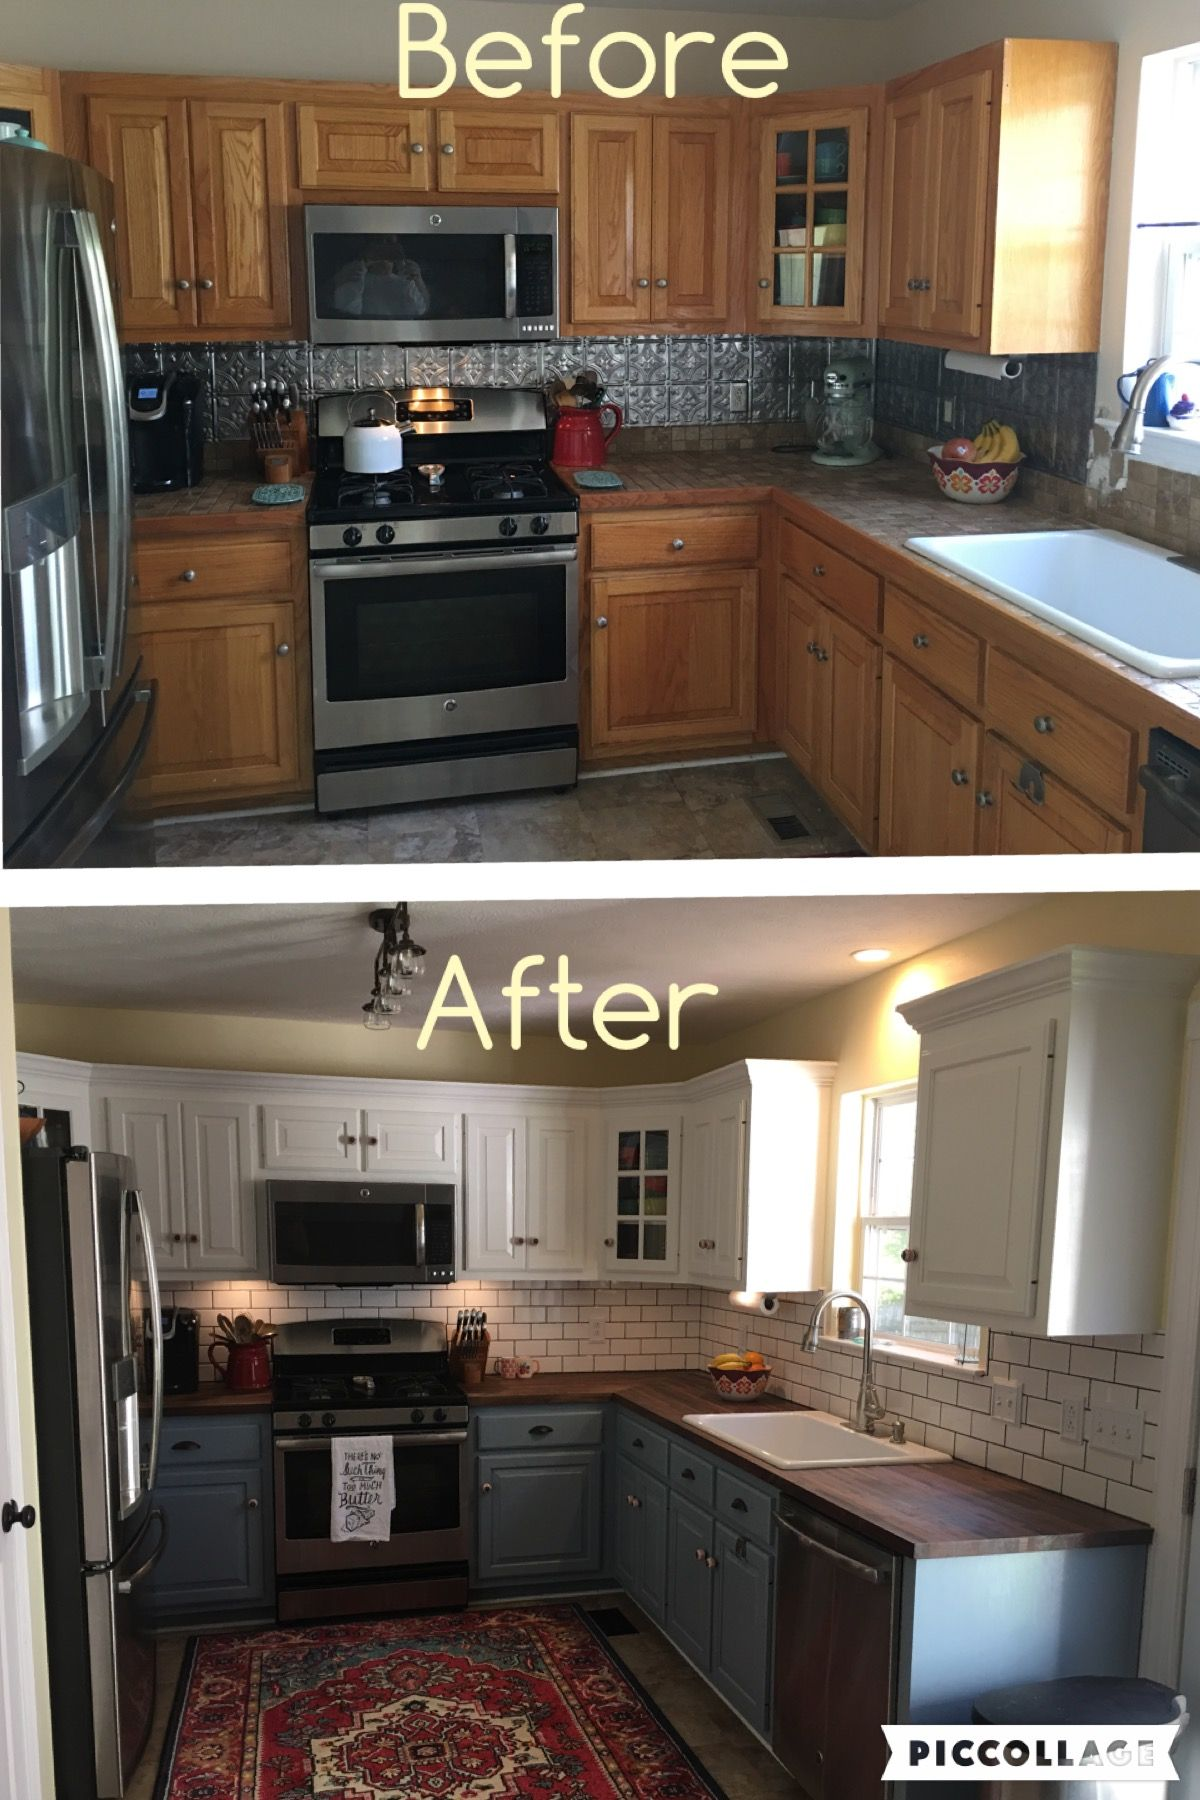 Can t wait to remodel my kitchen two toned cabinets valspar cabinet enamel from lowes successful kitchen updating best cabinet paint by far